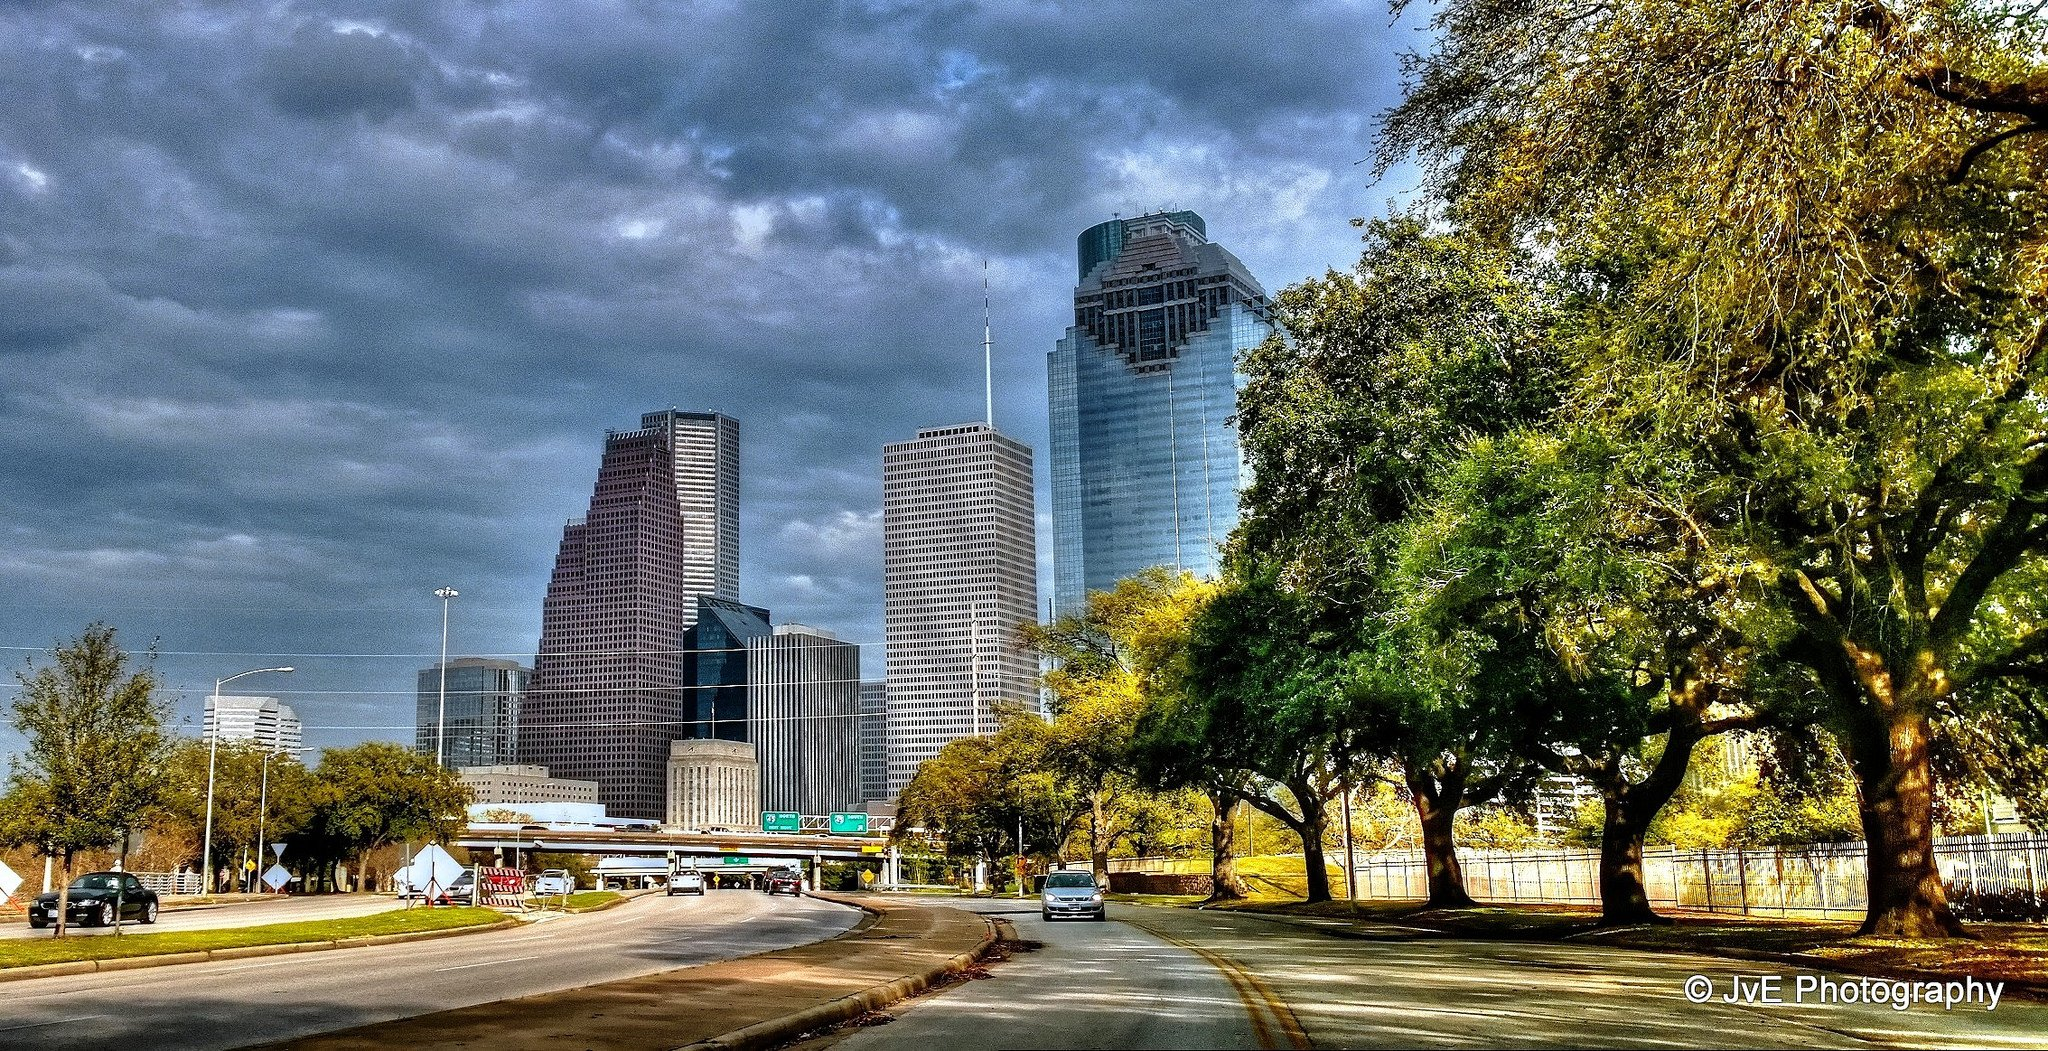 Google Office Usa Wallpaper On Houston Architecture Bridges Cities City Texas Night Towers Buildings Usa Downtown Offices Storehouses Stores Wallpaper 2048x1051 480493 Wallpaperup